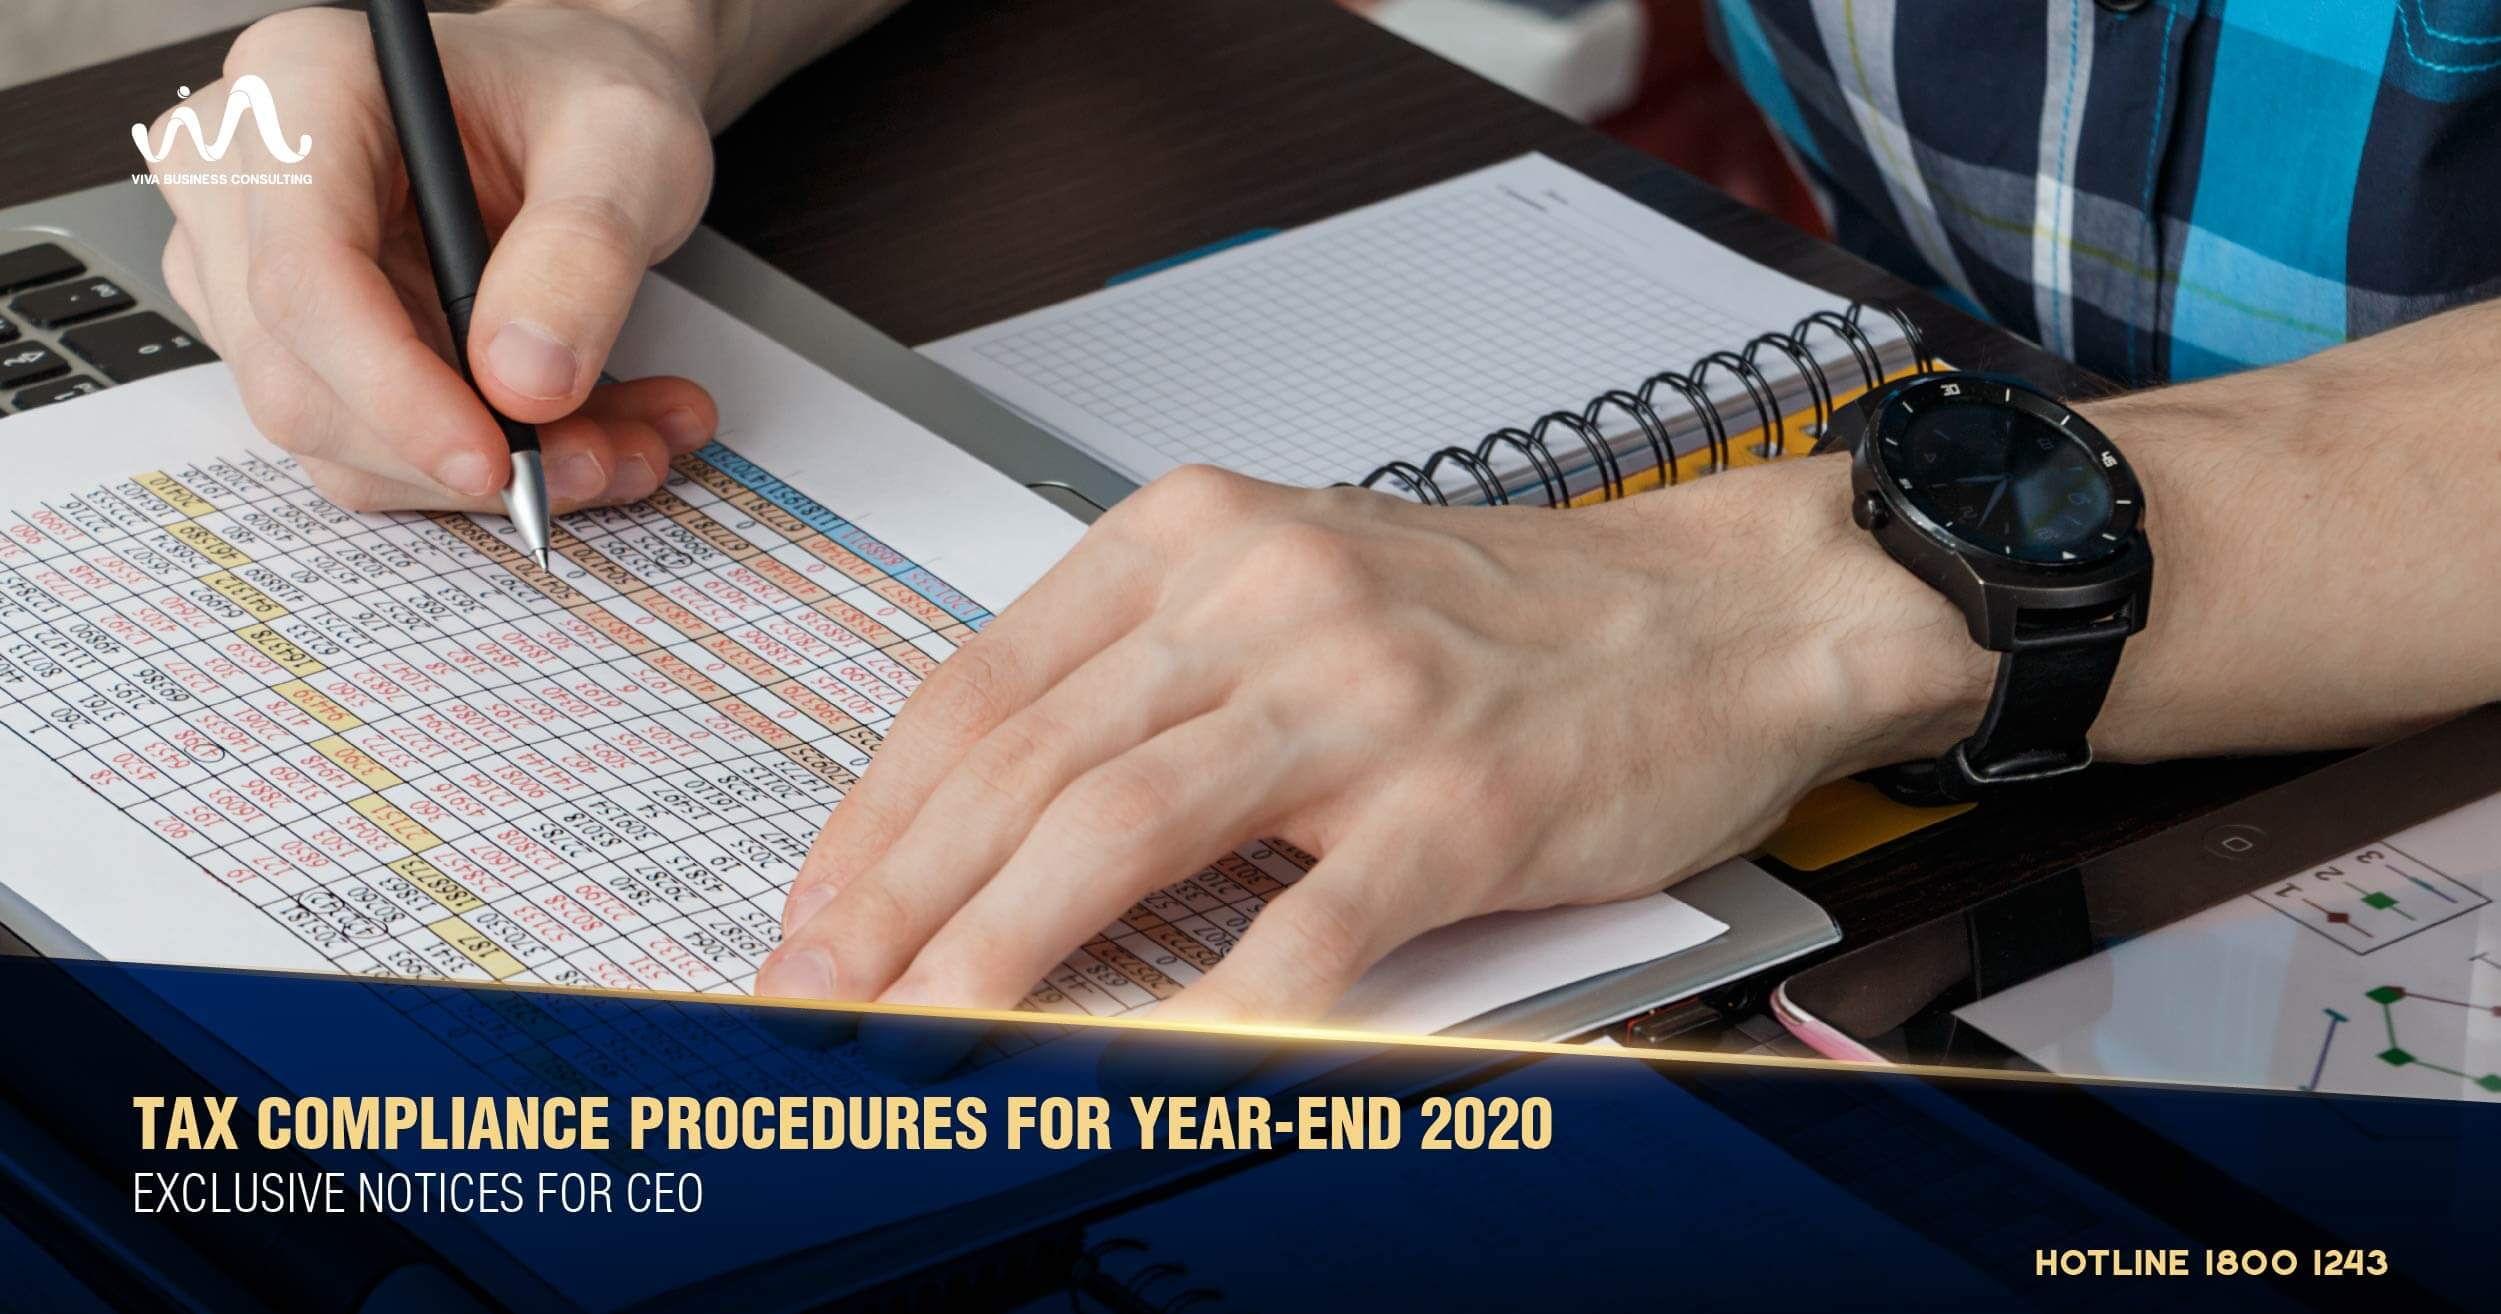 Tax compliance procedures end year 2020